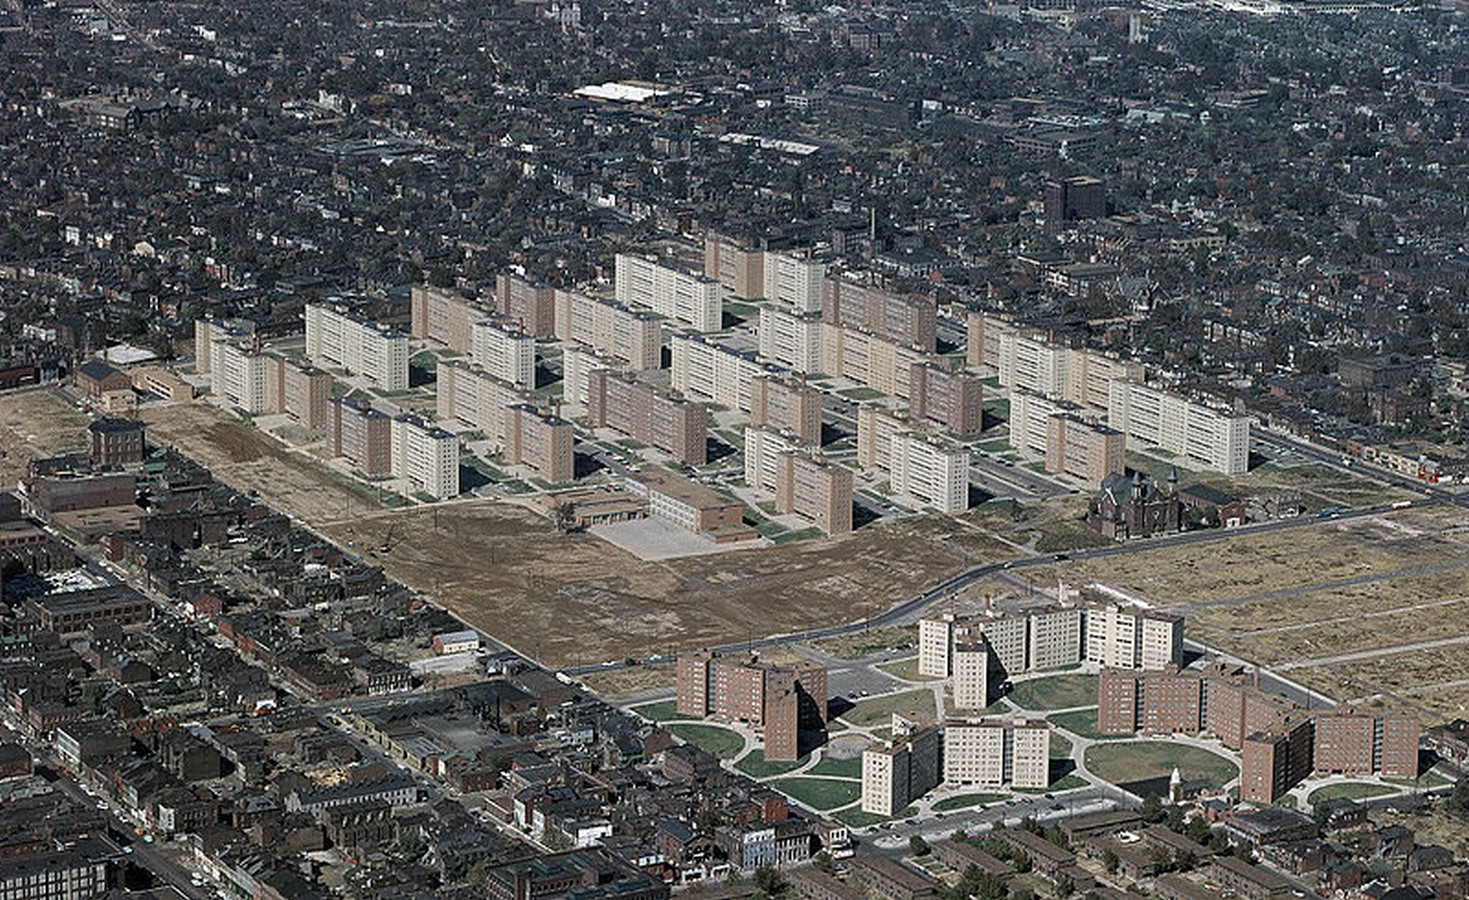 Pruitt-Igoe Housing Development St. Louis by Minoru Yamasaki- The troubled paradise - Sheet5